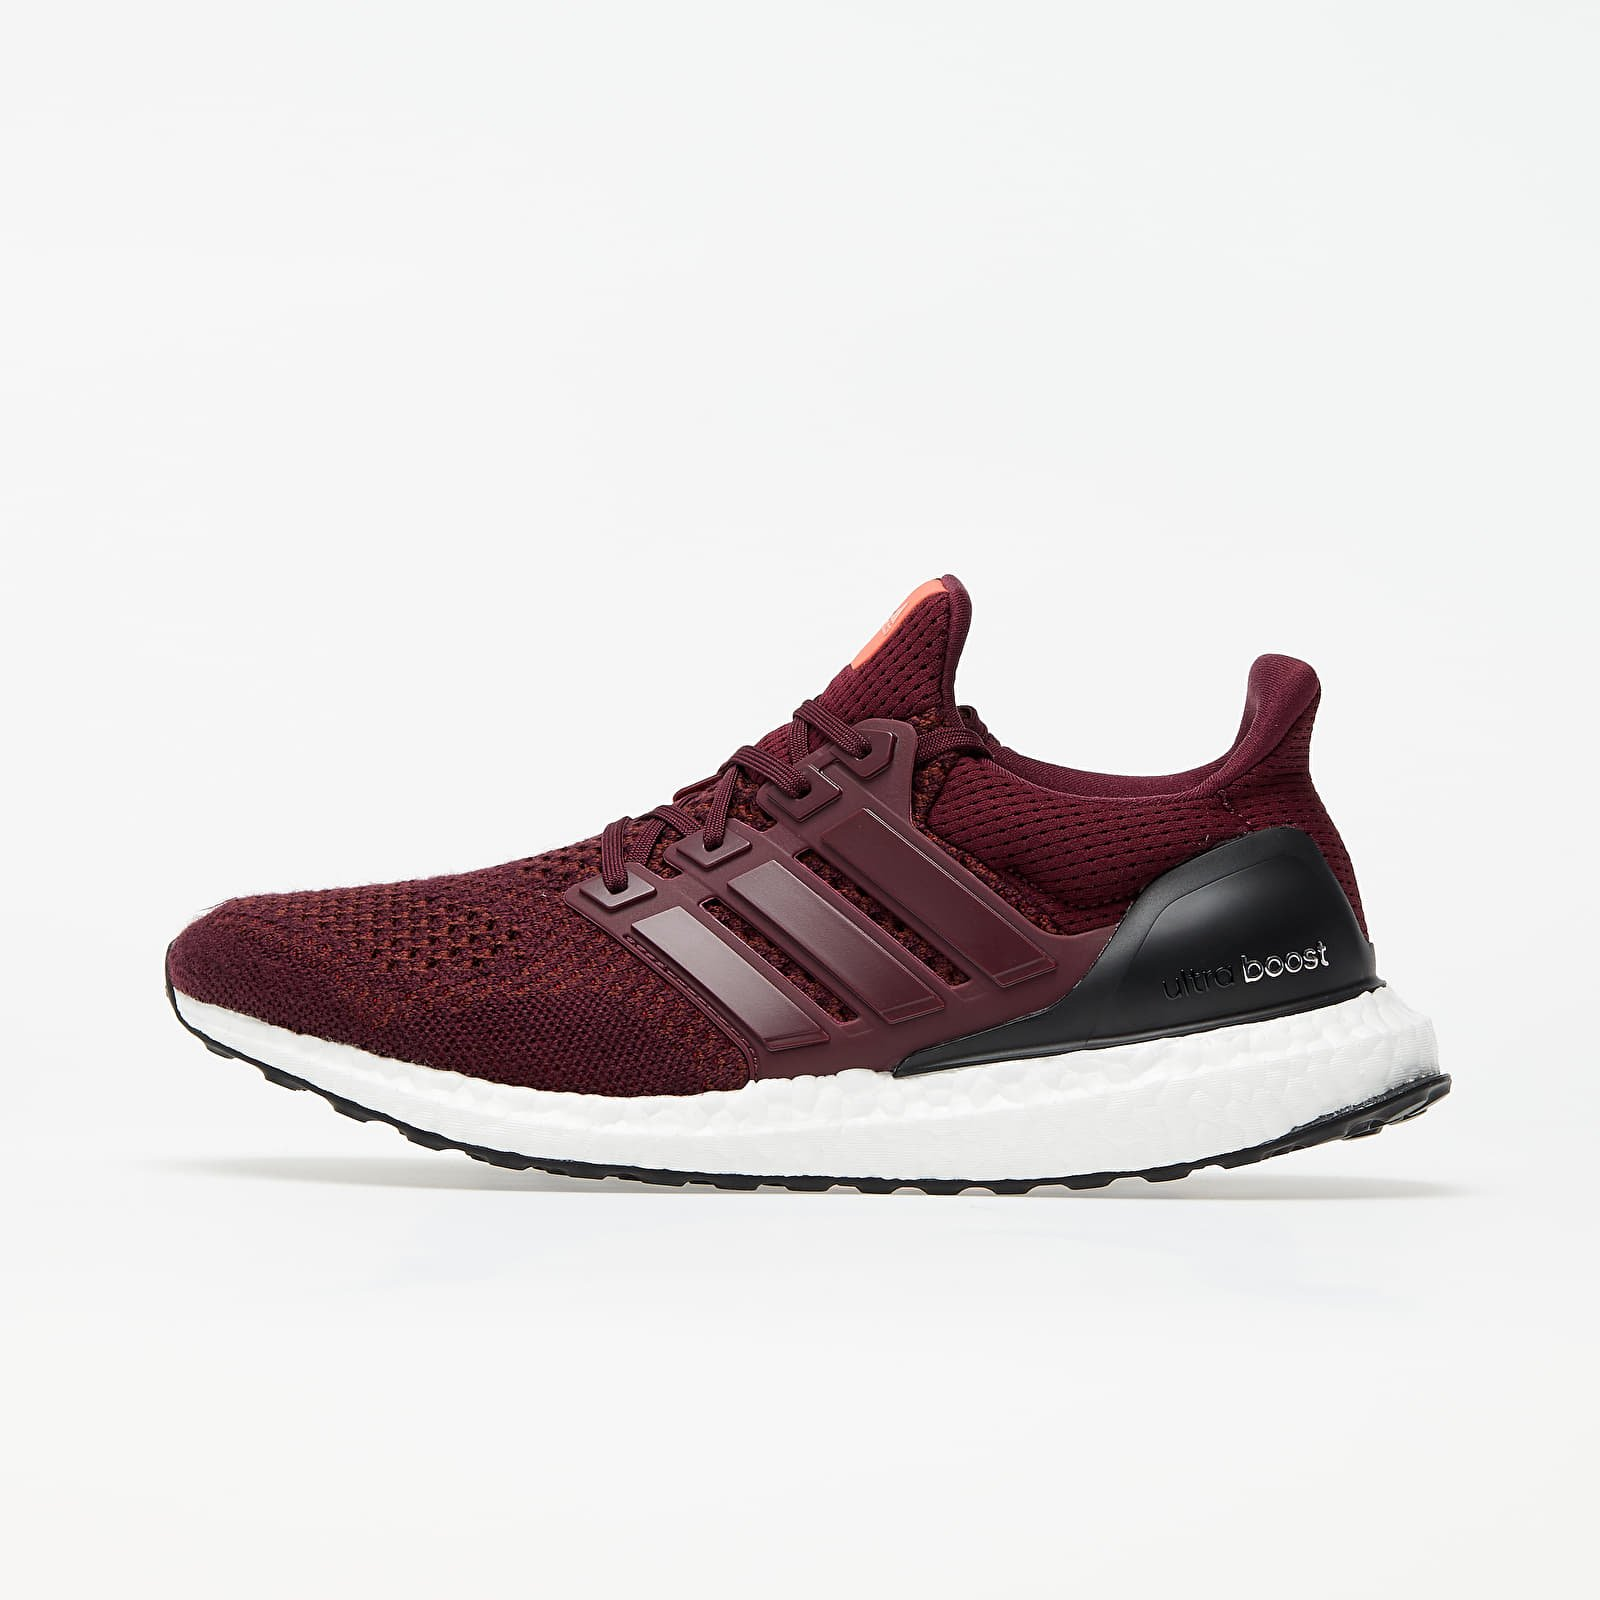 Chaussures et baskets homme adidas UltraBOOST Ltd. Maroon/ Maroon/ Core Black